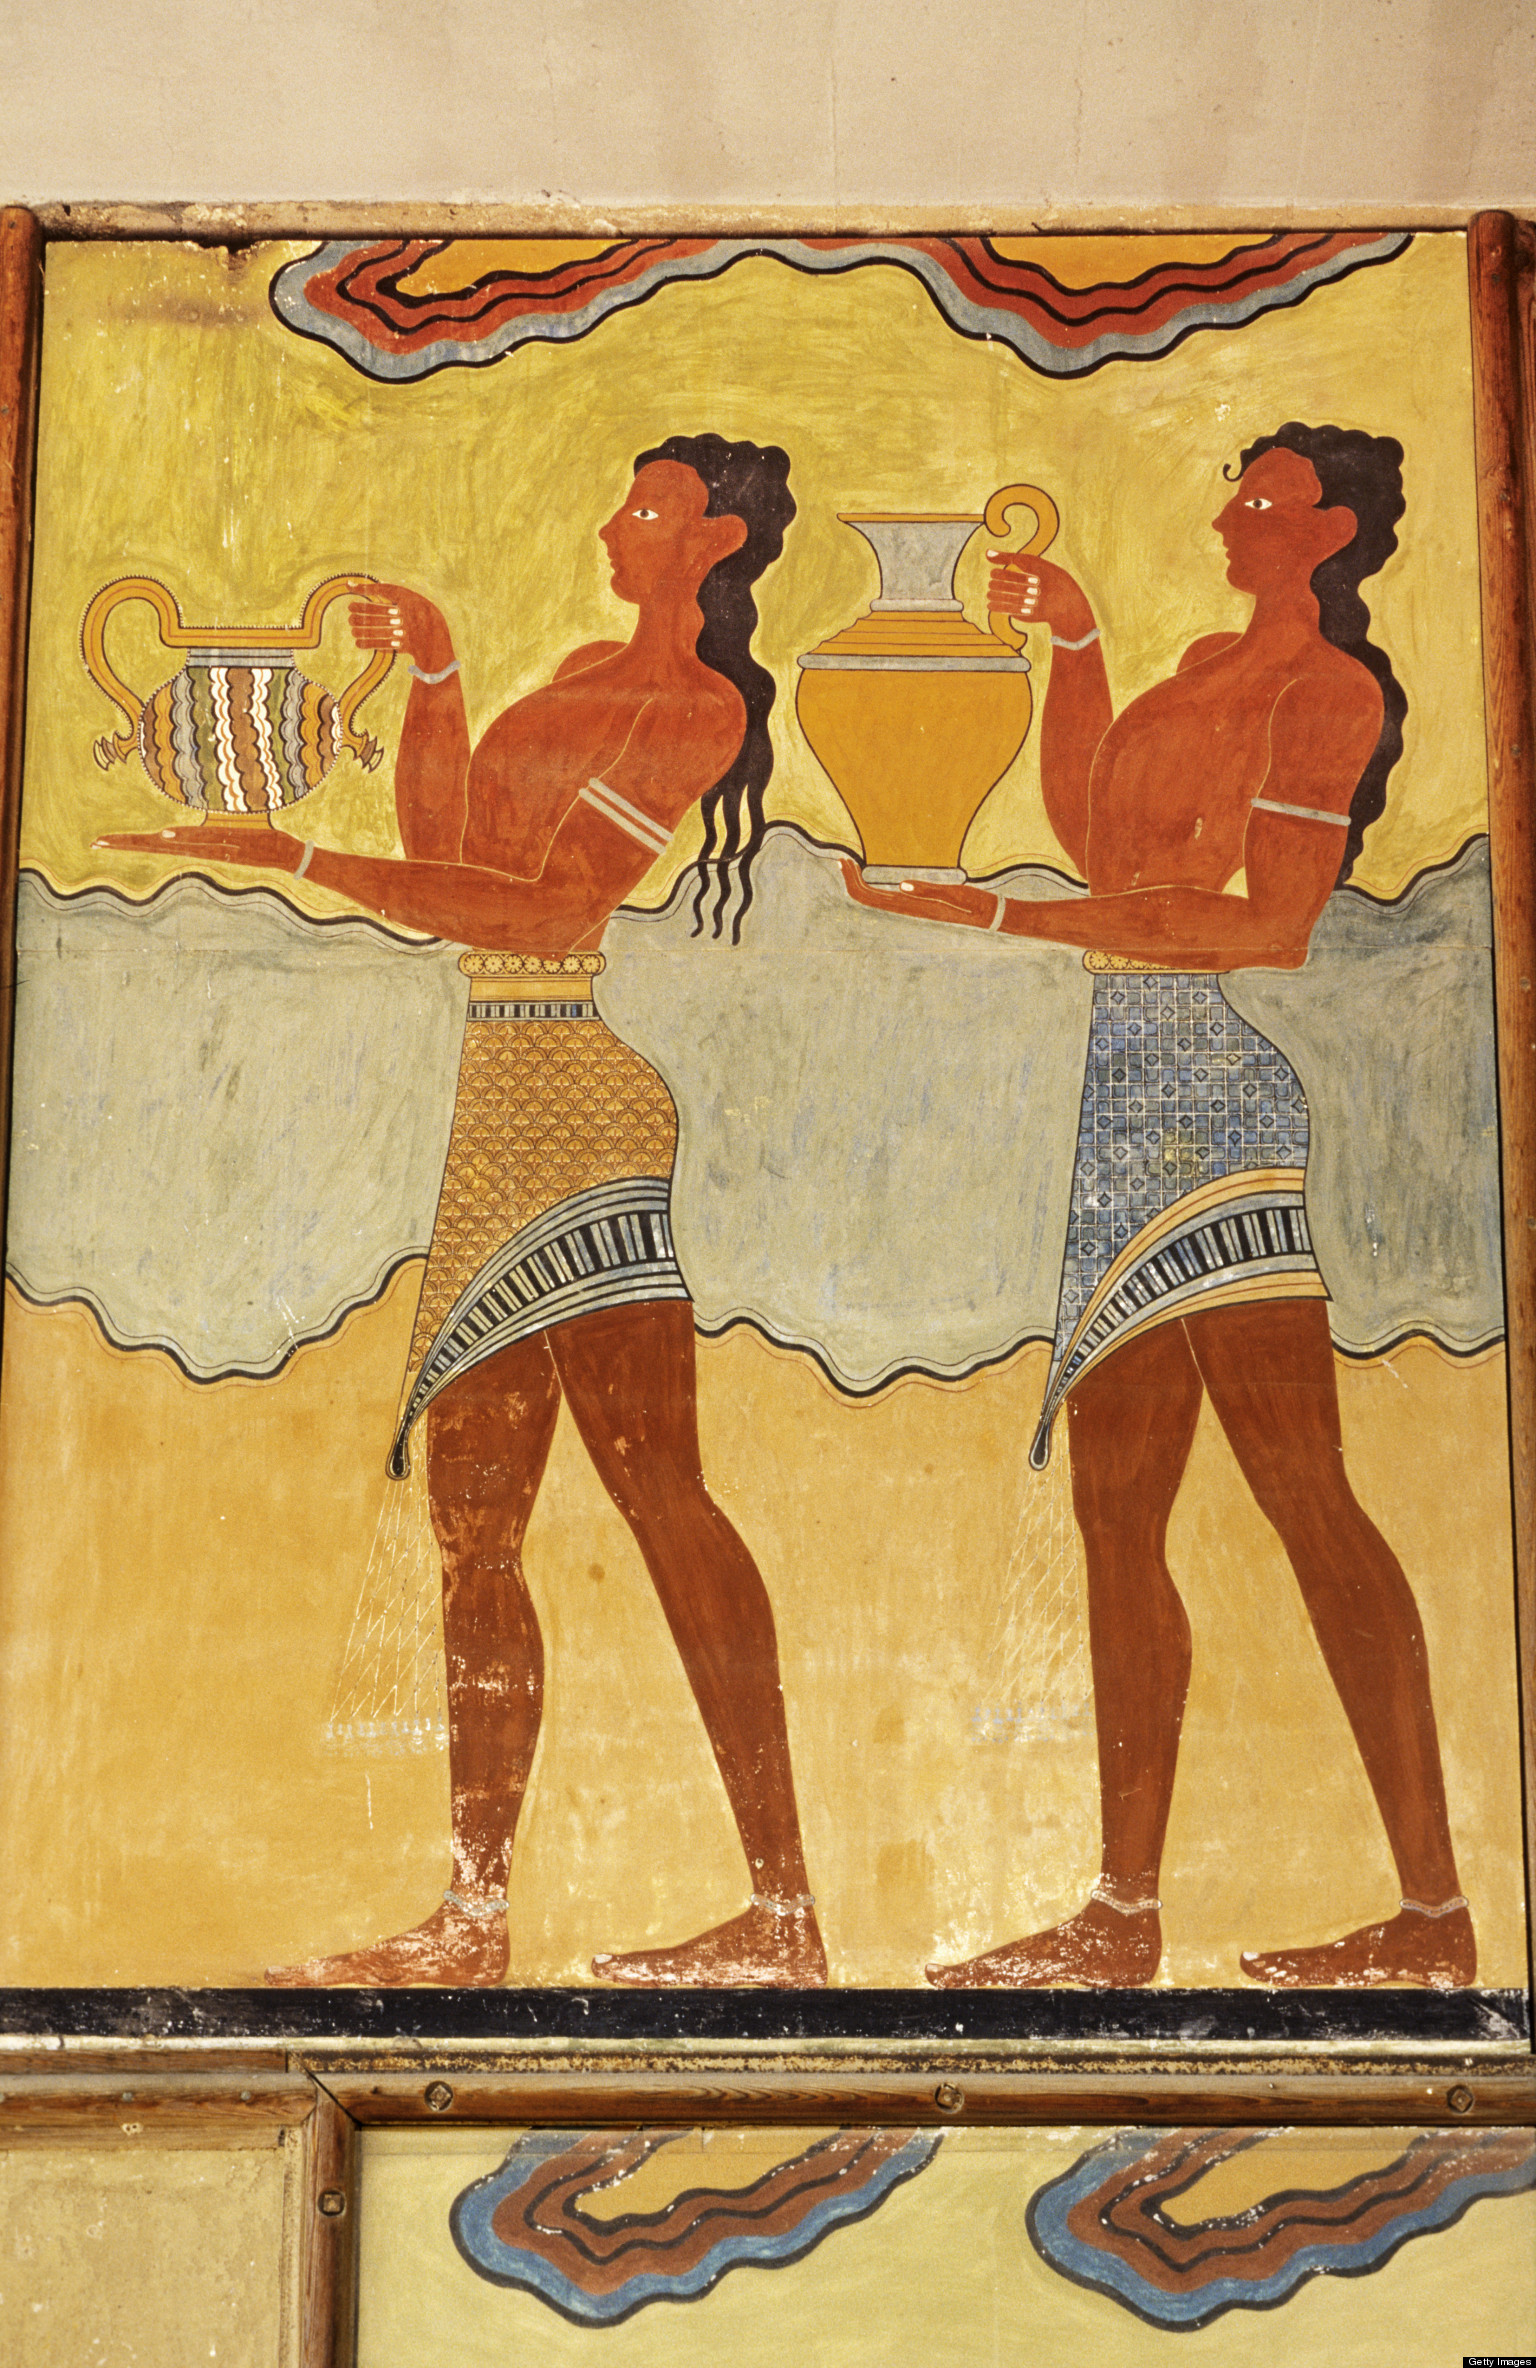 Cup Bearers fresco in the Palace of Knossos,Crete.